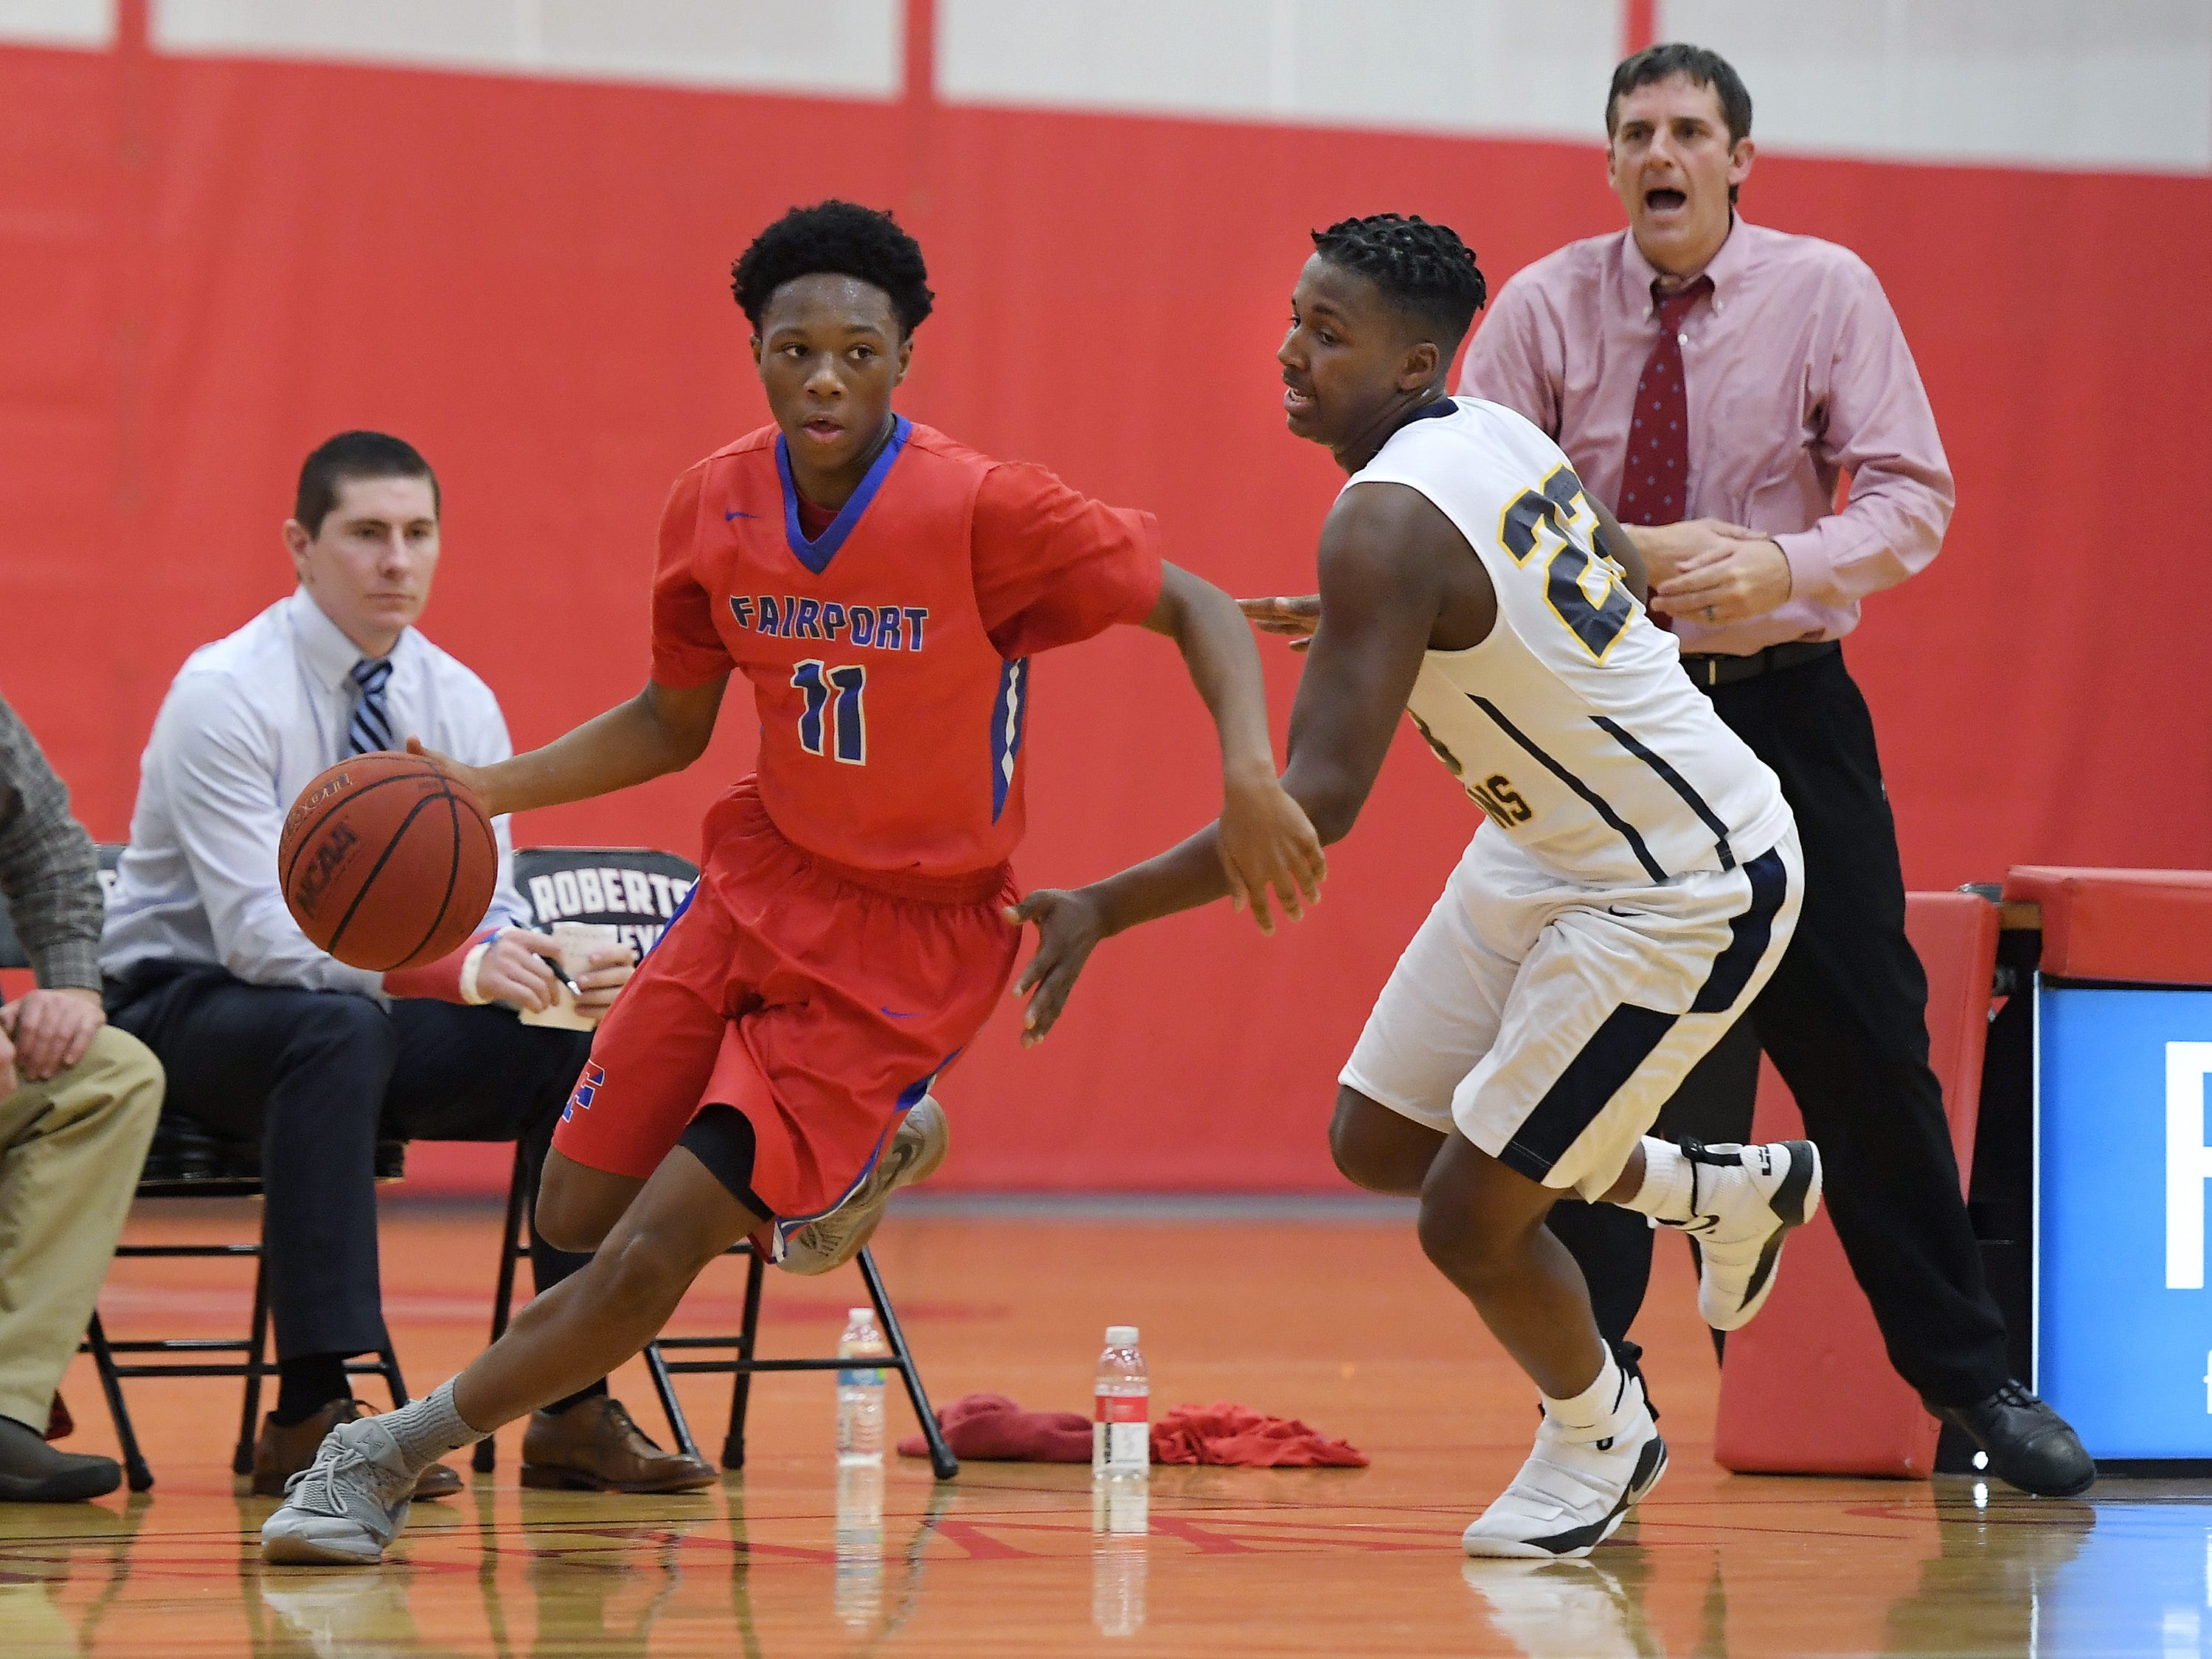 Fairport's Vanzell Johnson, left, drives by University Prep's Kendrick Cheyshad during a regular season game played at Roberts Wesleyan College on Wednesday, Nov. 28, 2018. Fairport beat University Prep 56-51.